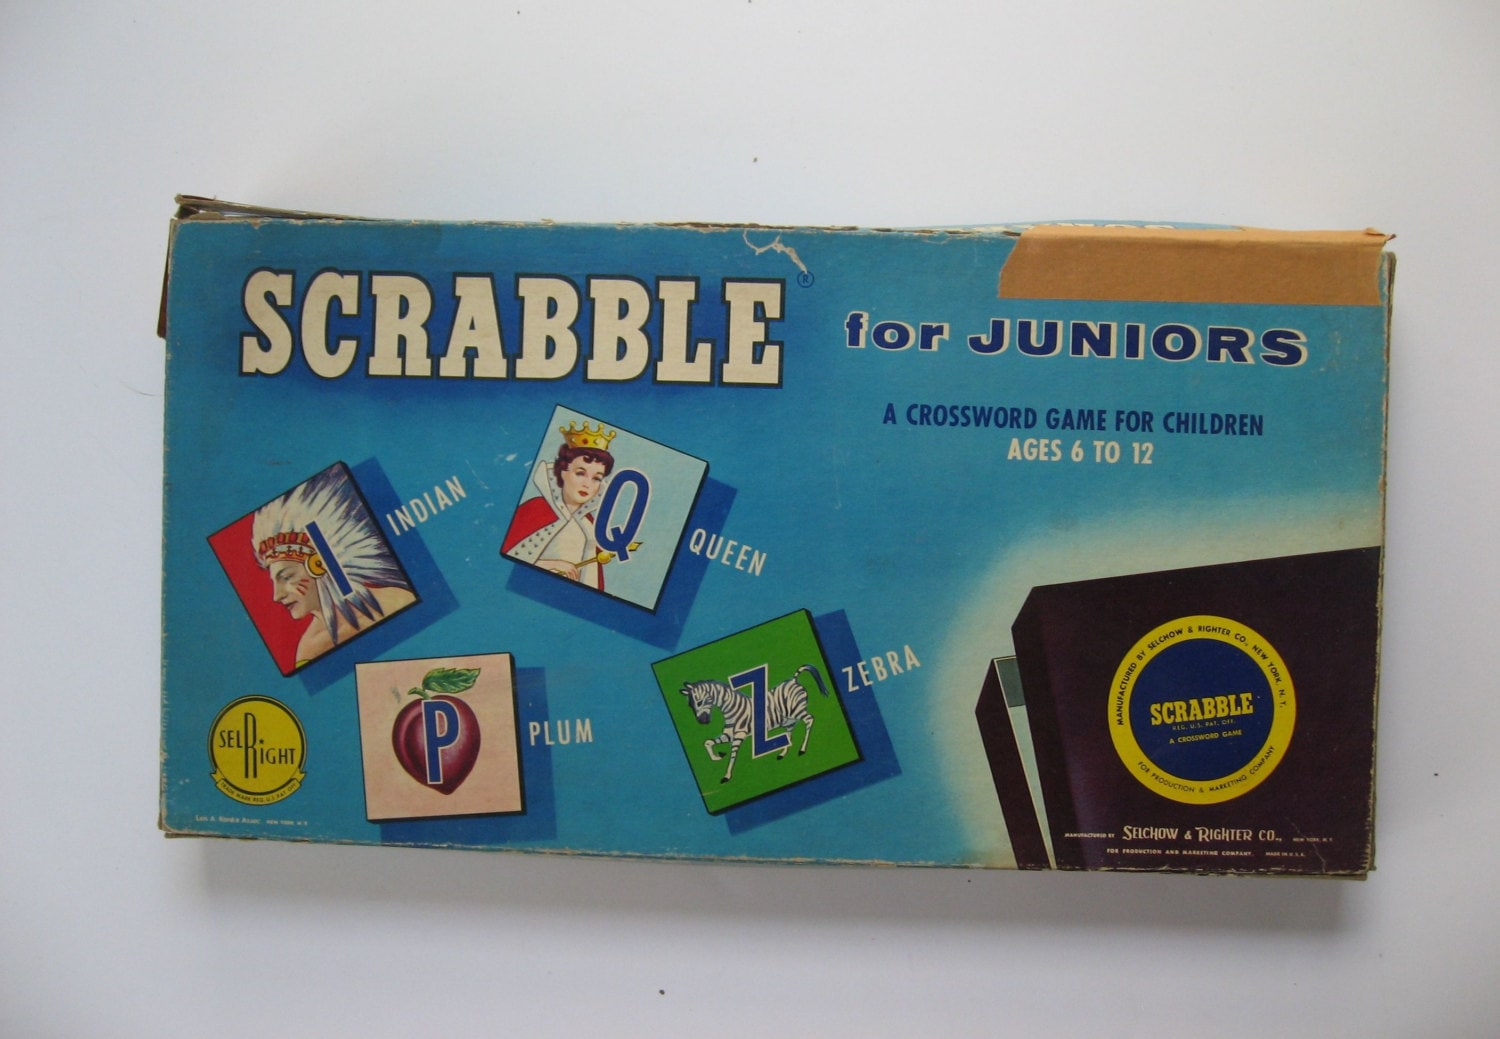 SALE was 15 1958 Scrabble for Juniors. Vintage board game by